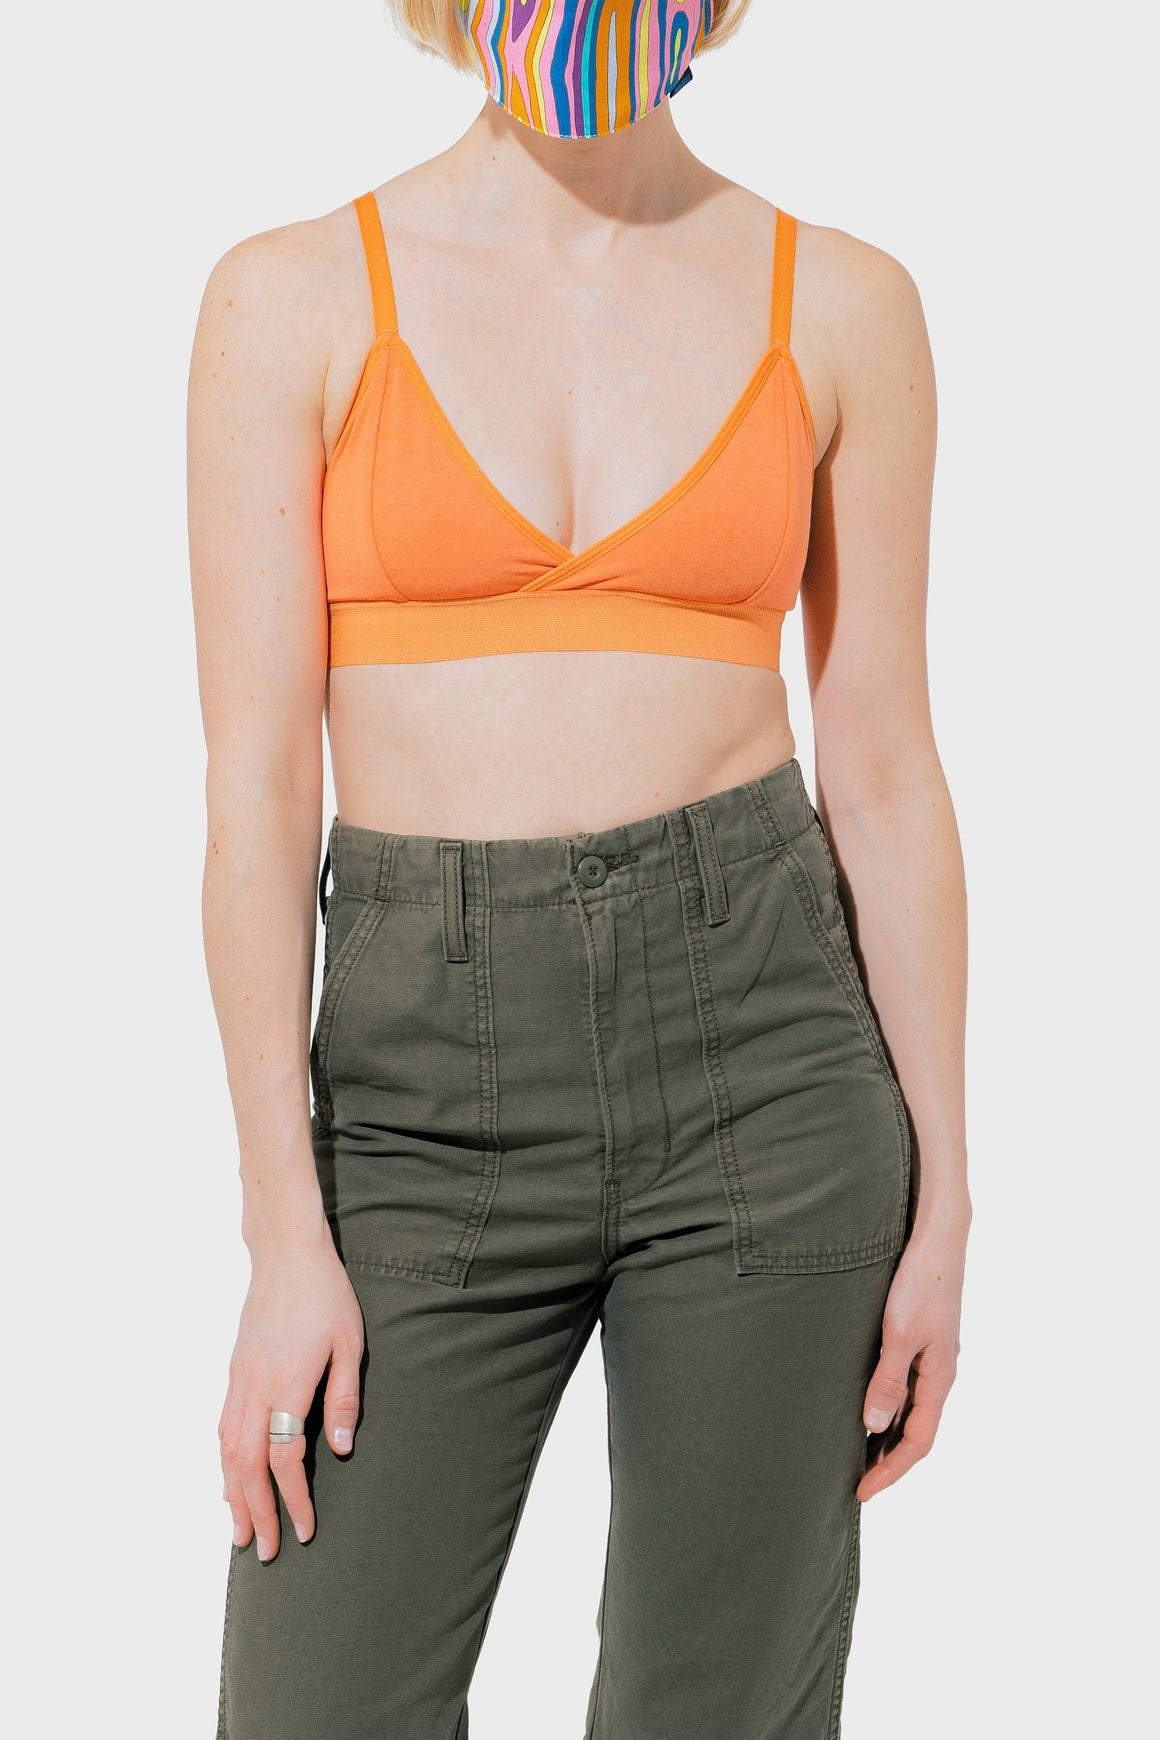 Women's Richer Poorer Classic Bralette in Flamingo